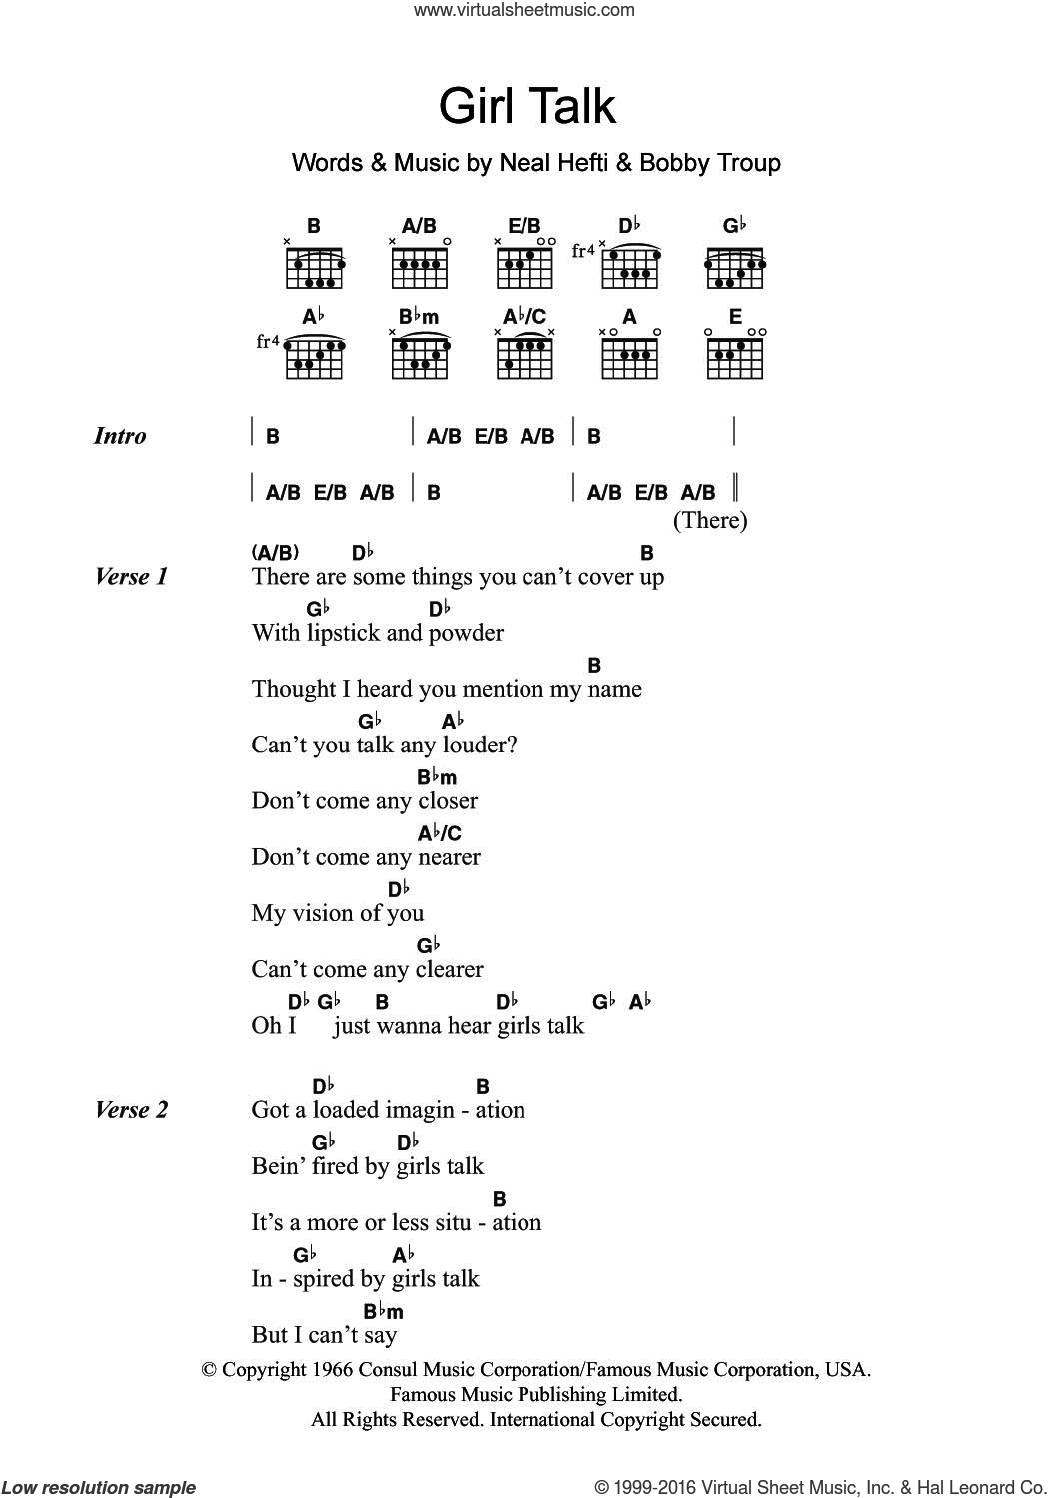 Girl Talk sheet music for guitar (chords) by Tony Bennett, Bobby Troup and Neal Hefti, intermediate skill level